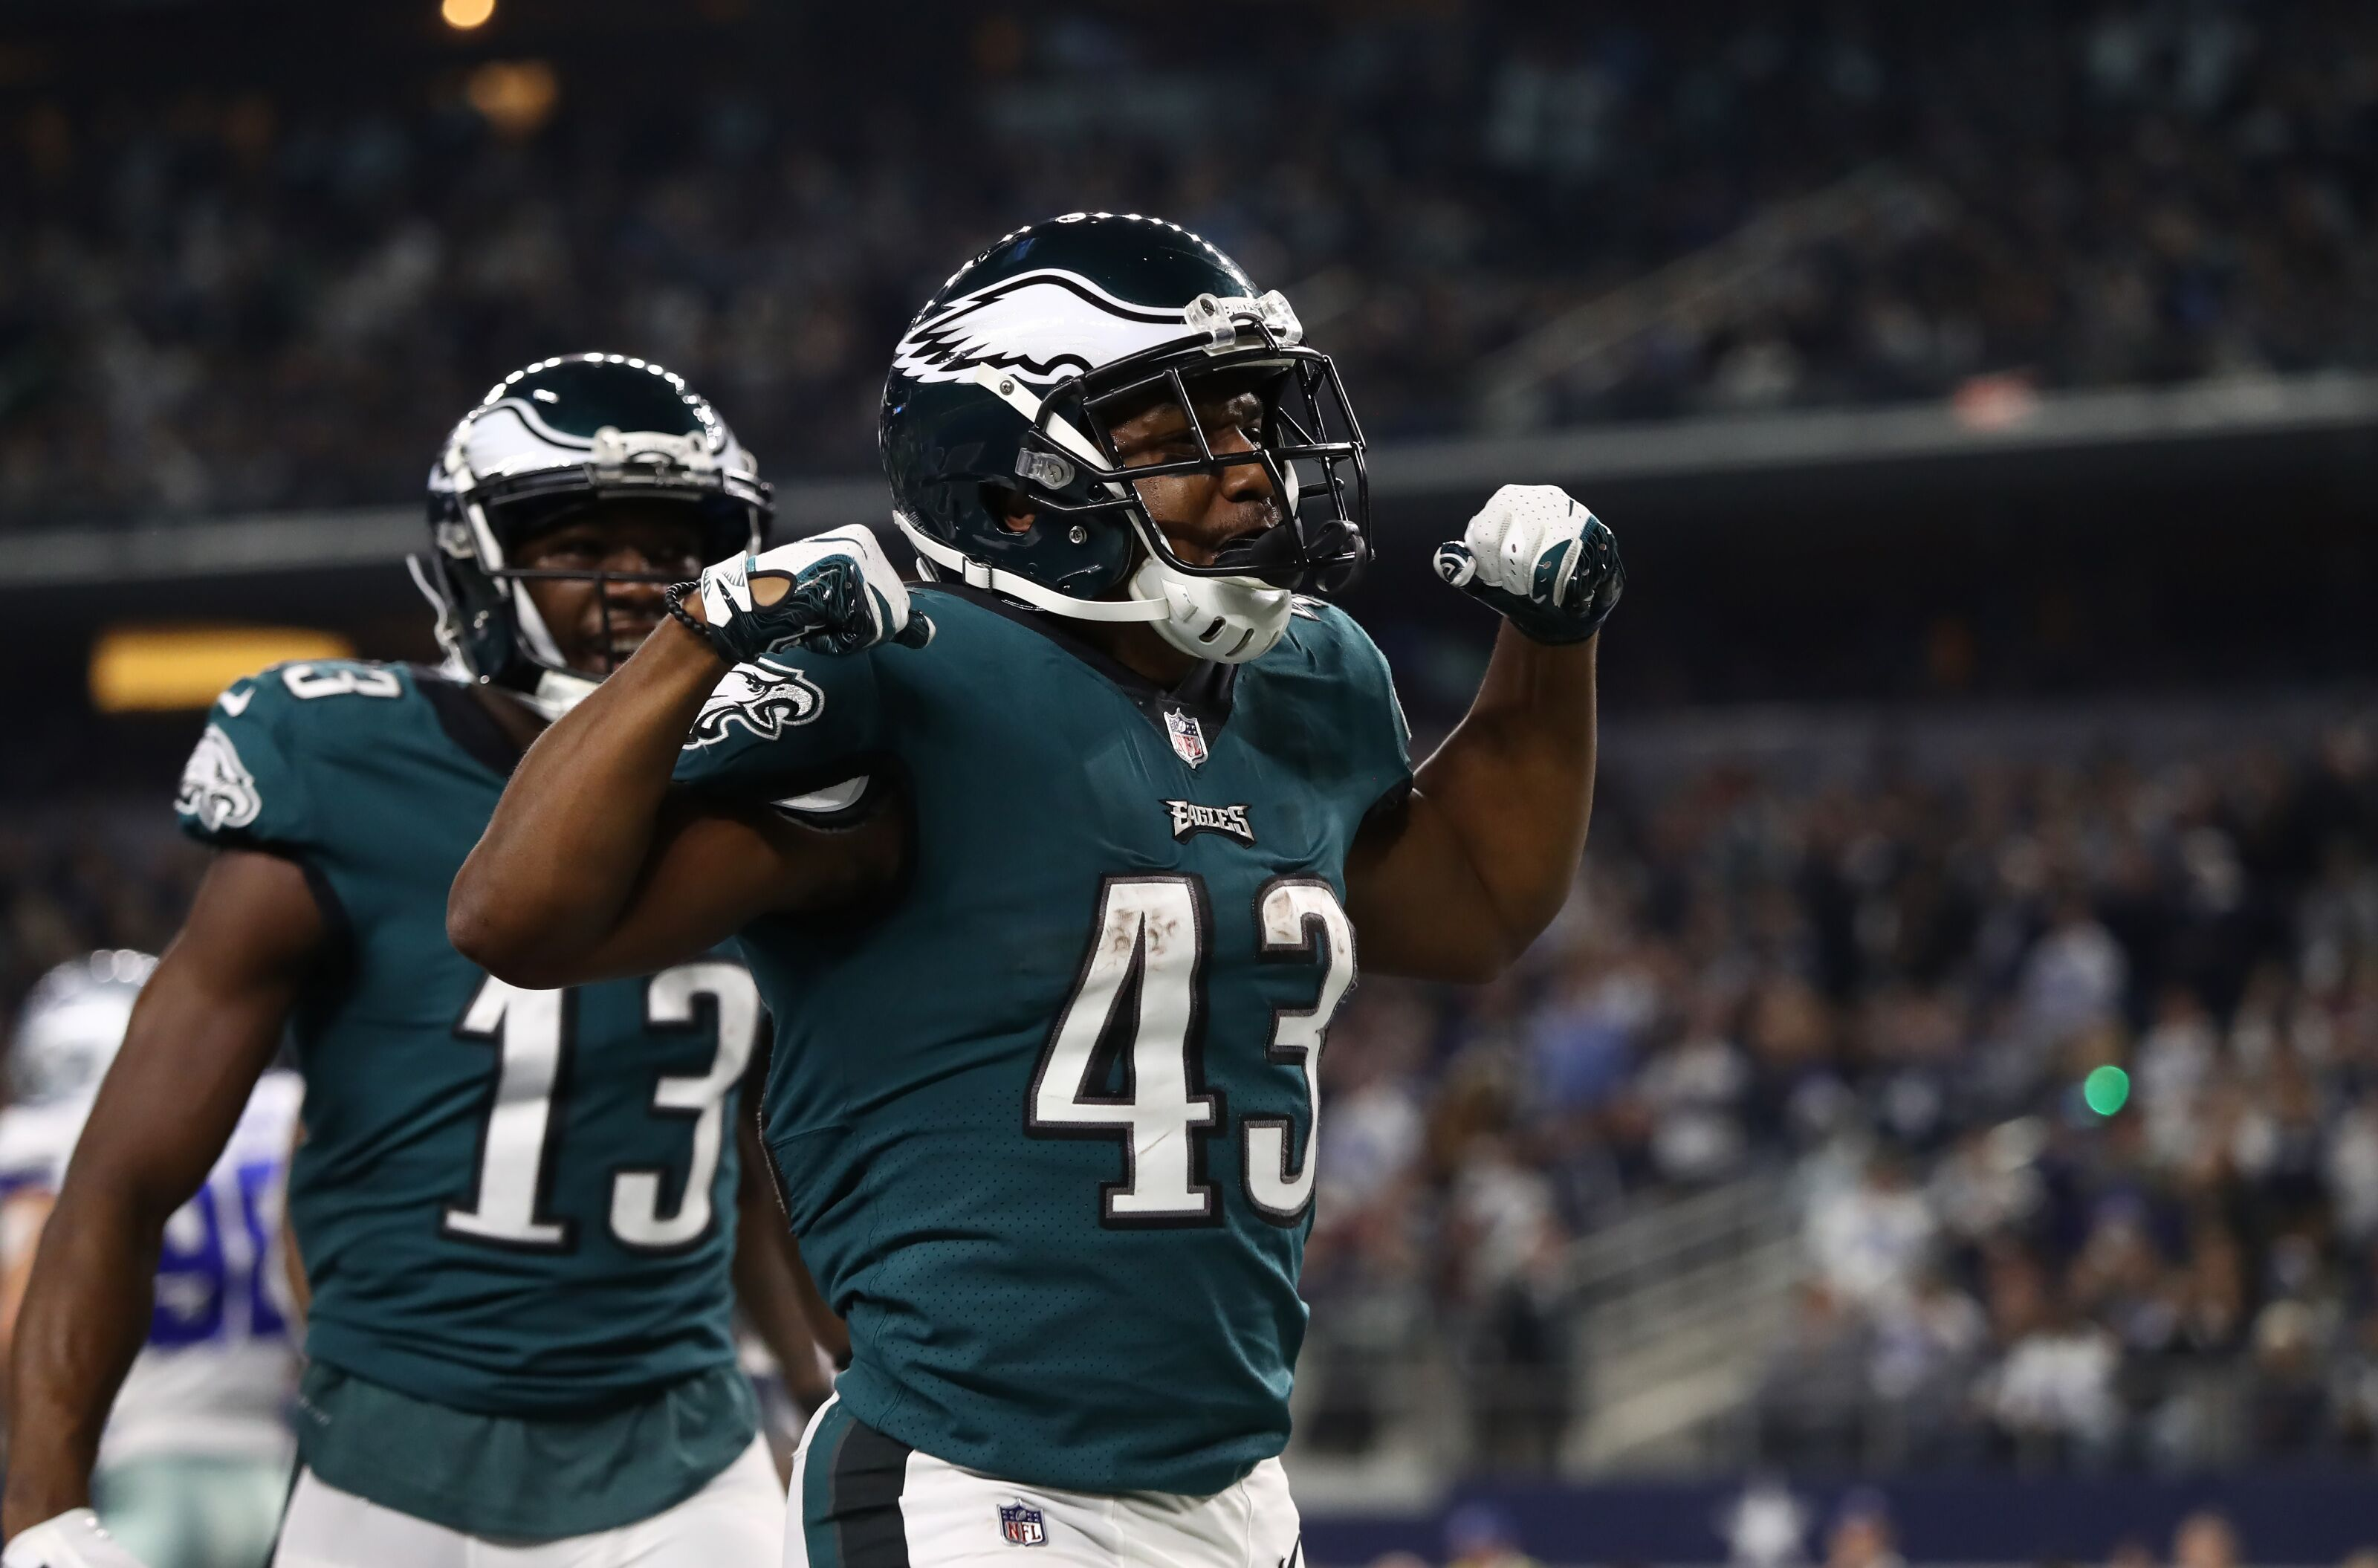 cb7eb8bca89 Darren Sproles plans to take his time deciding on his future